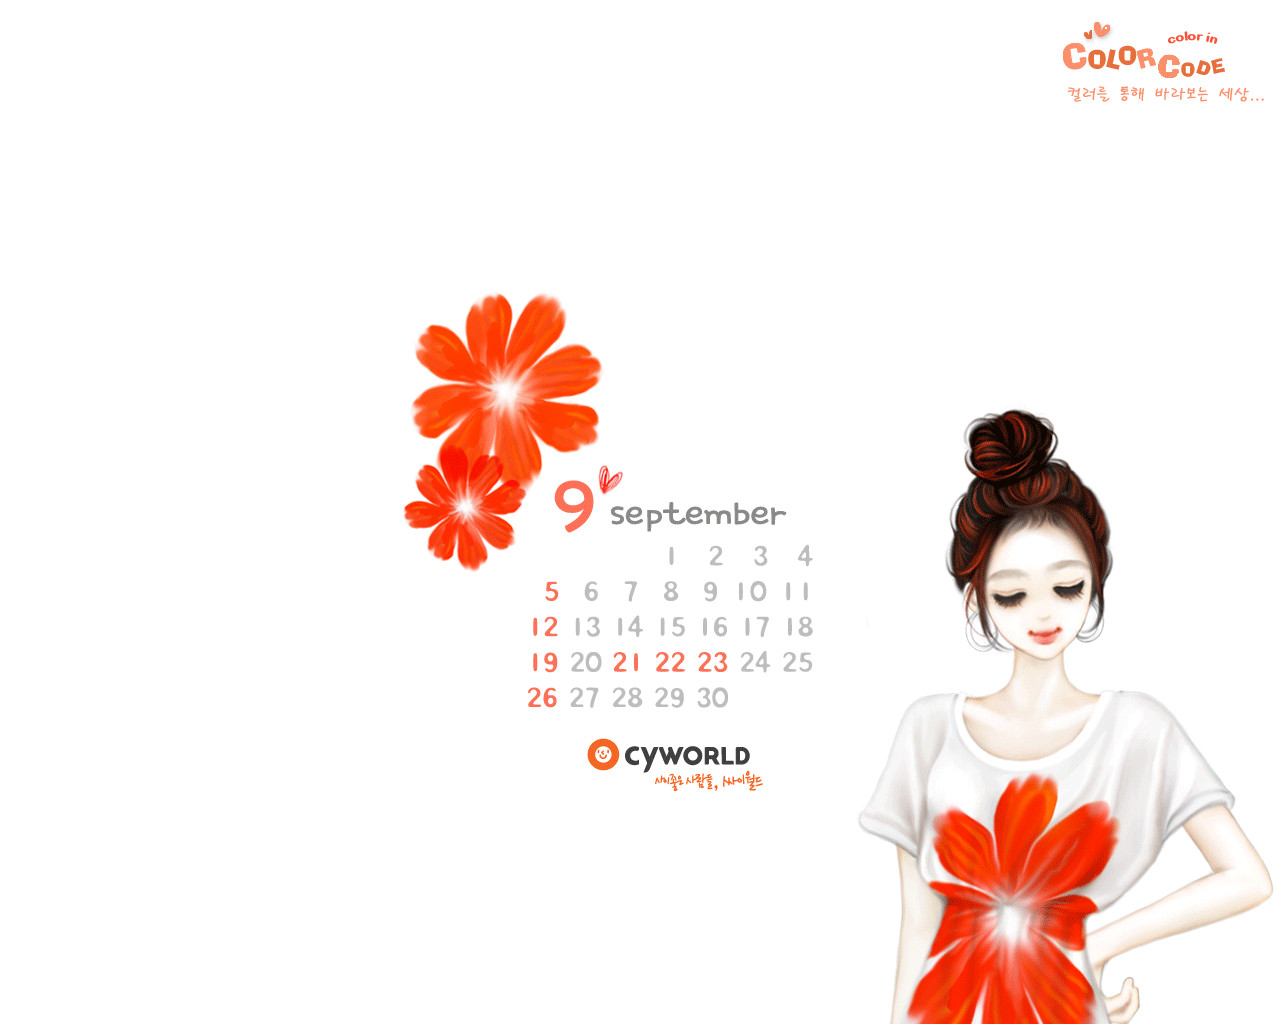 Wallpaper calendar years 13322